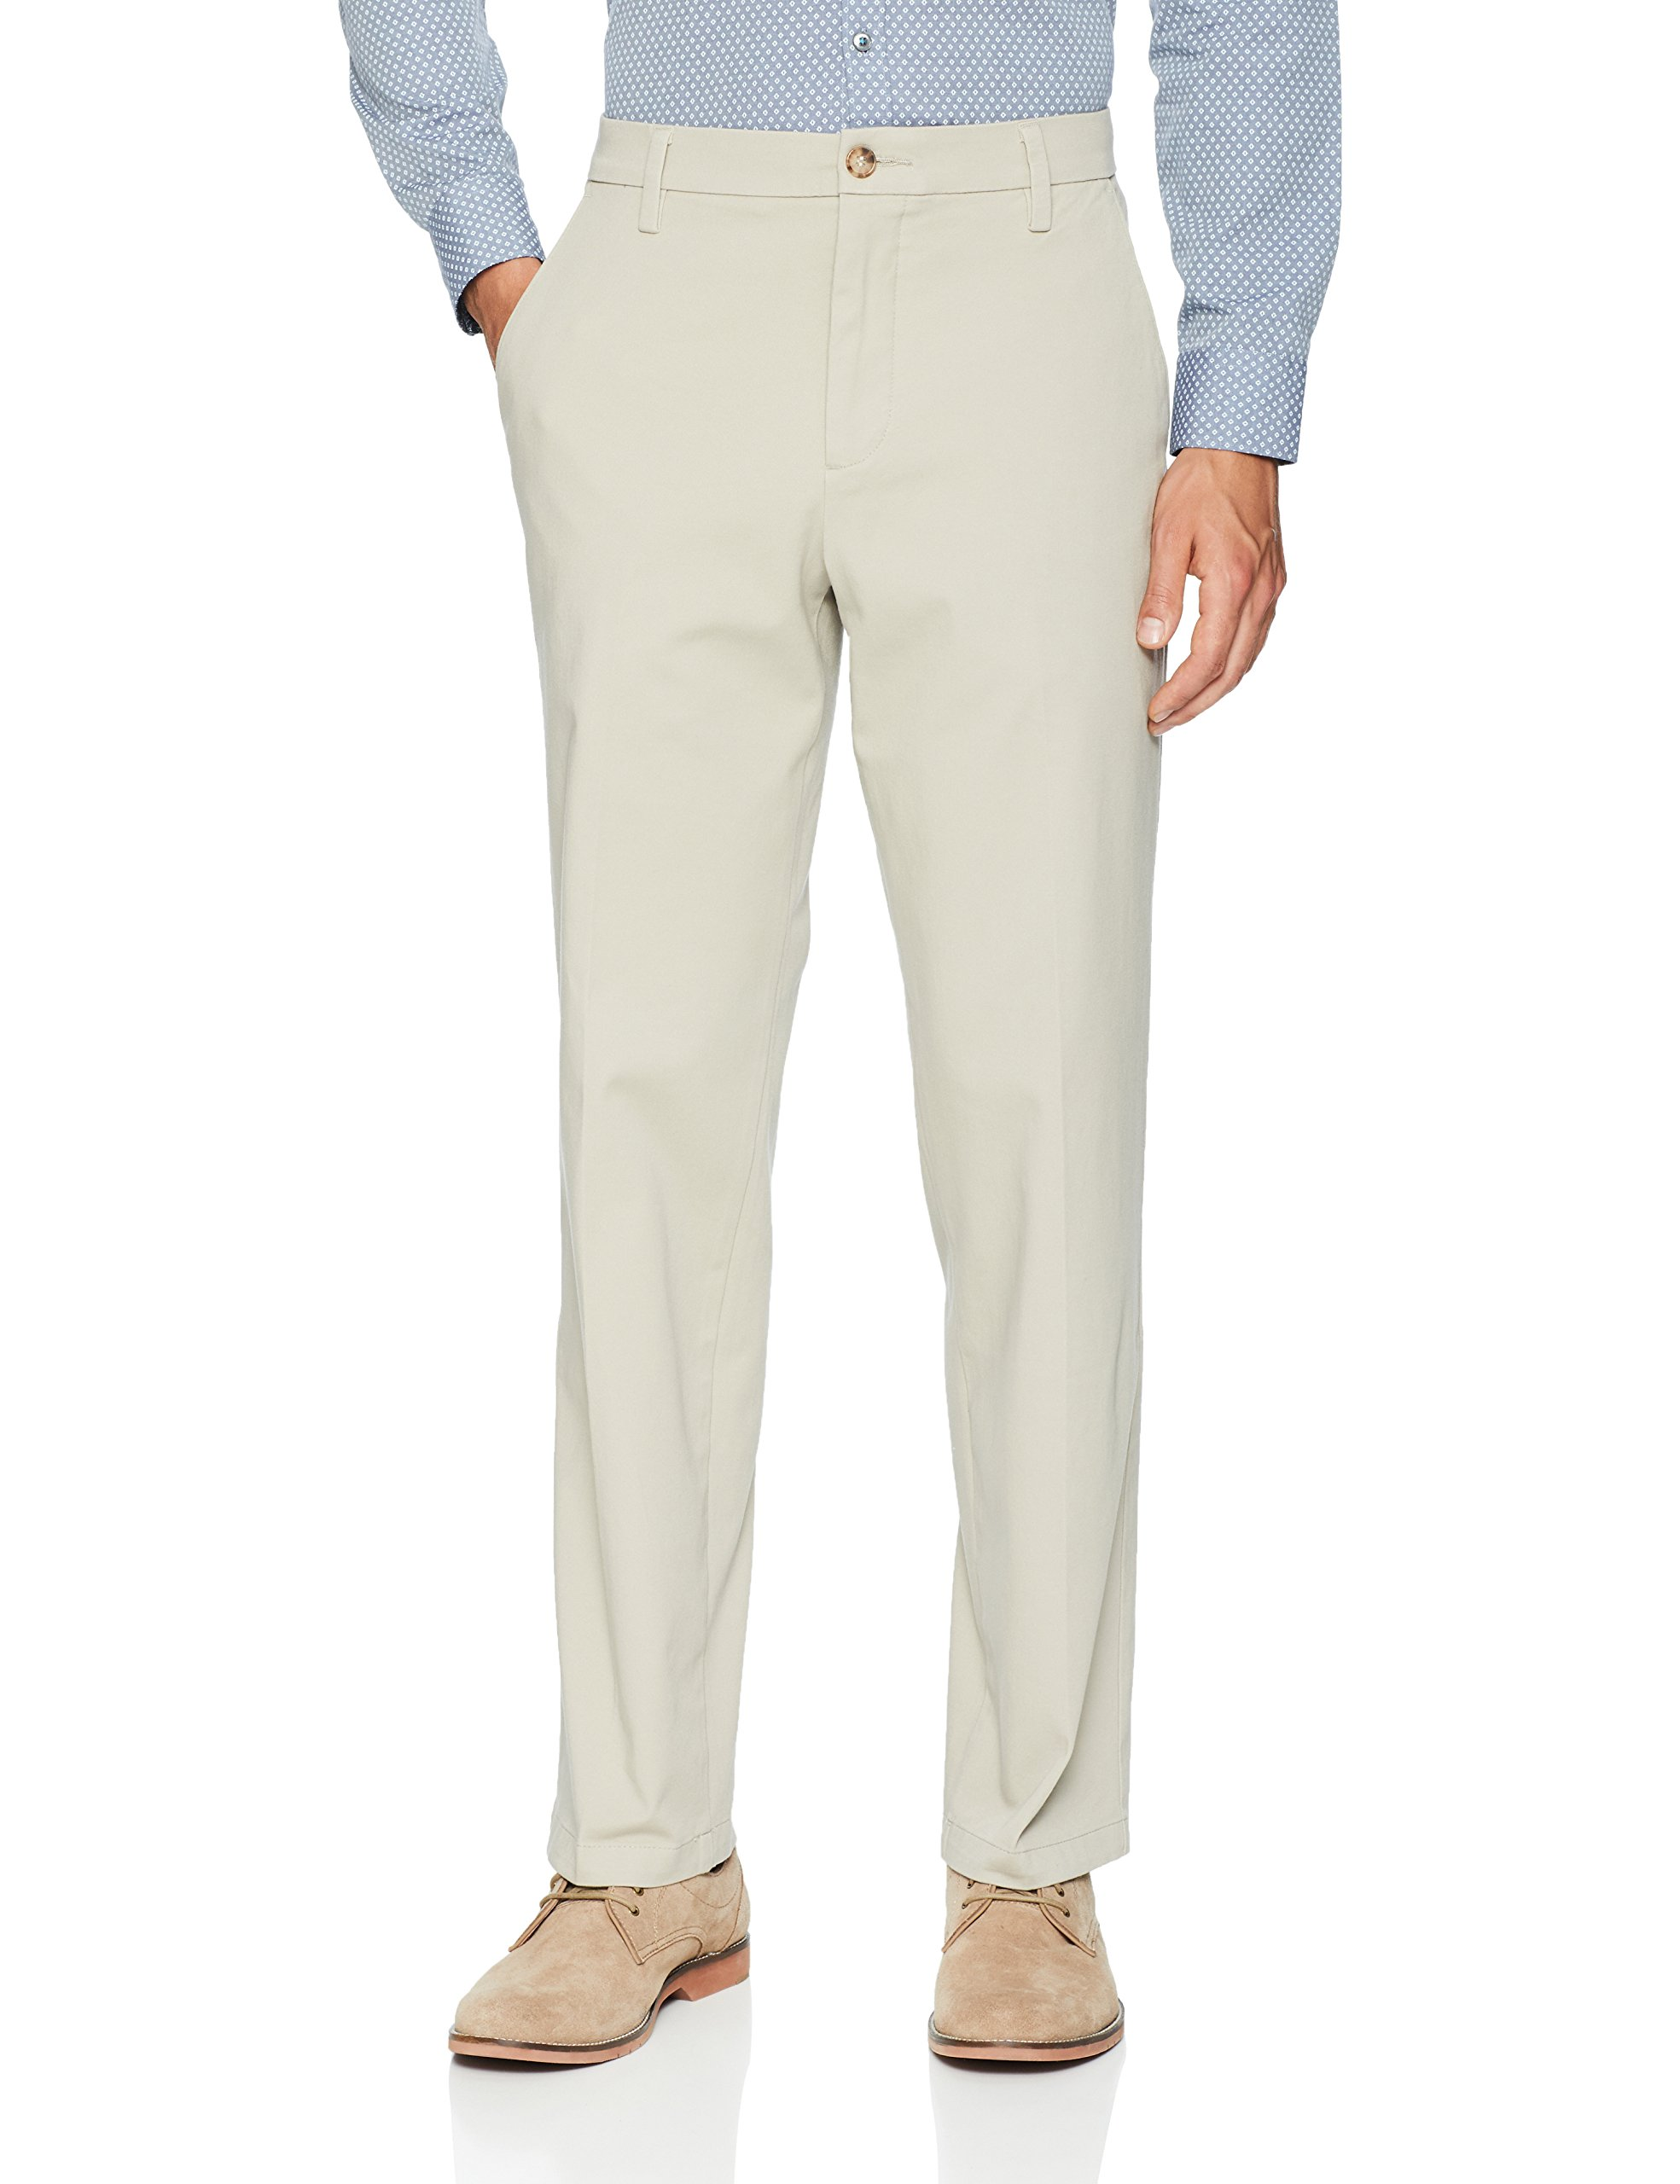 Dockers Men's Classic Fit Workday Khaki Smart 360 Flex Pants D3, Safari Beige (Stretch), 30W x 30L